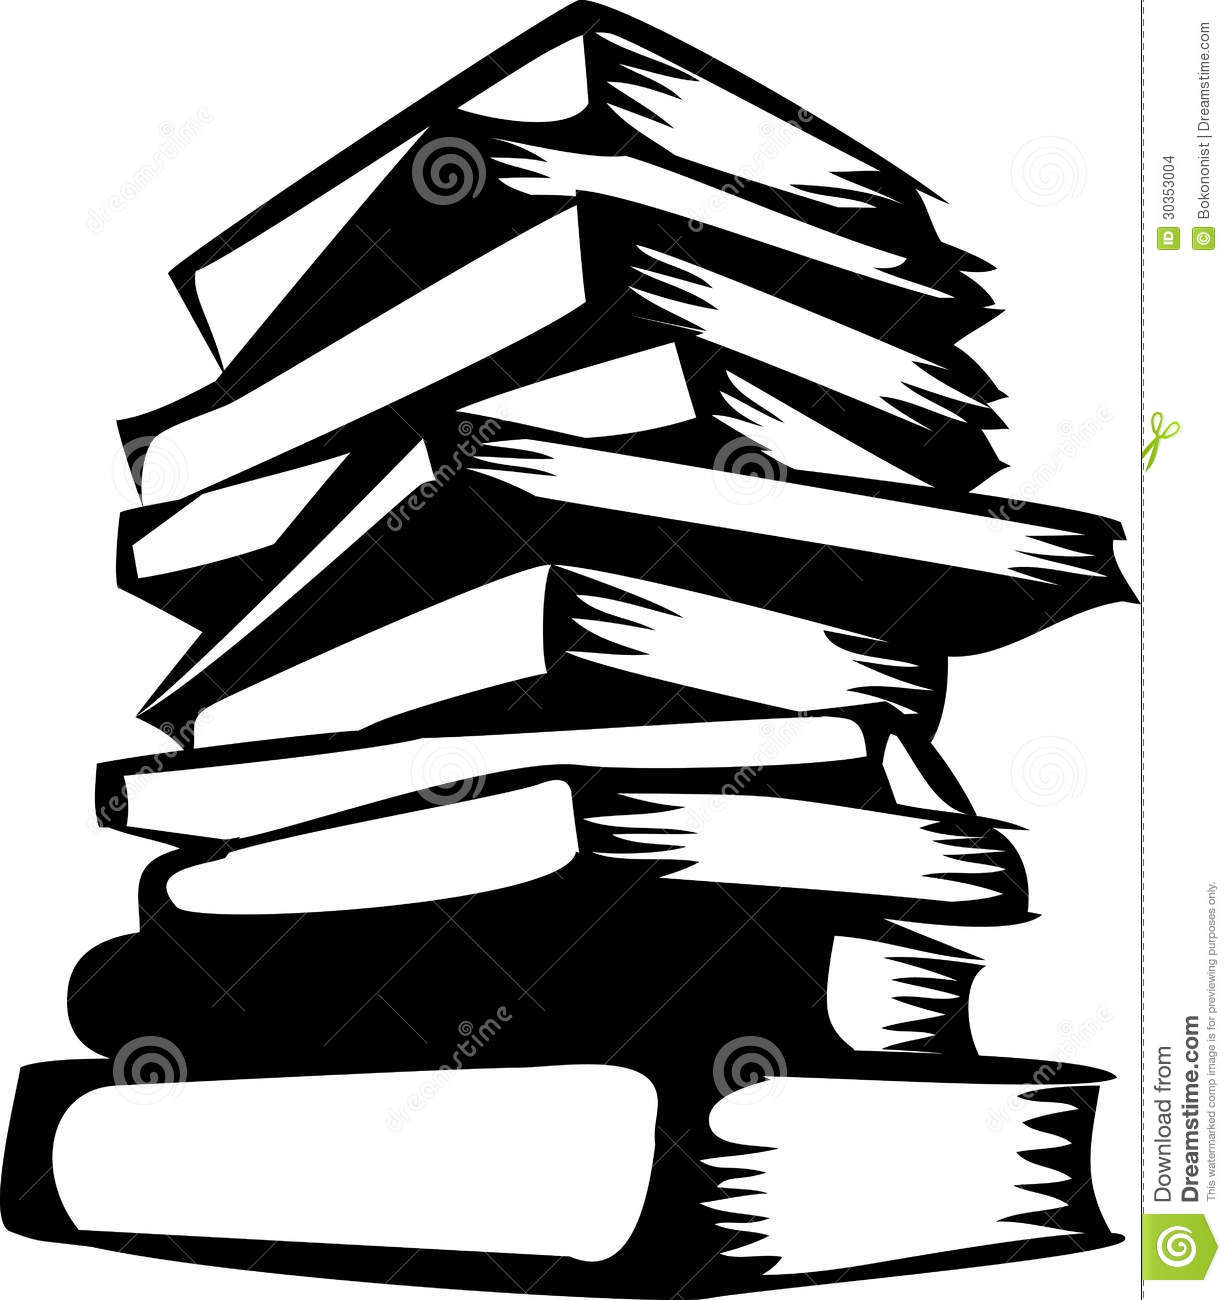 Open book pictures clip art clipart free to use resource - Cliparting.com